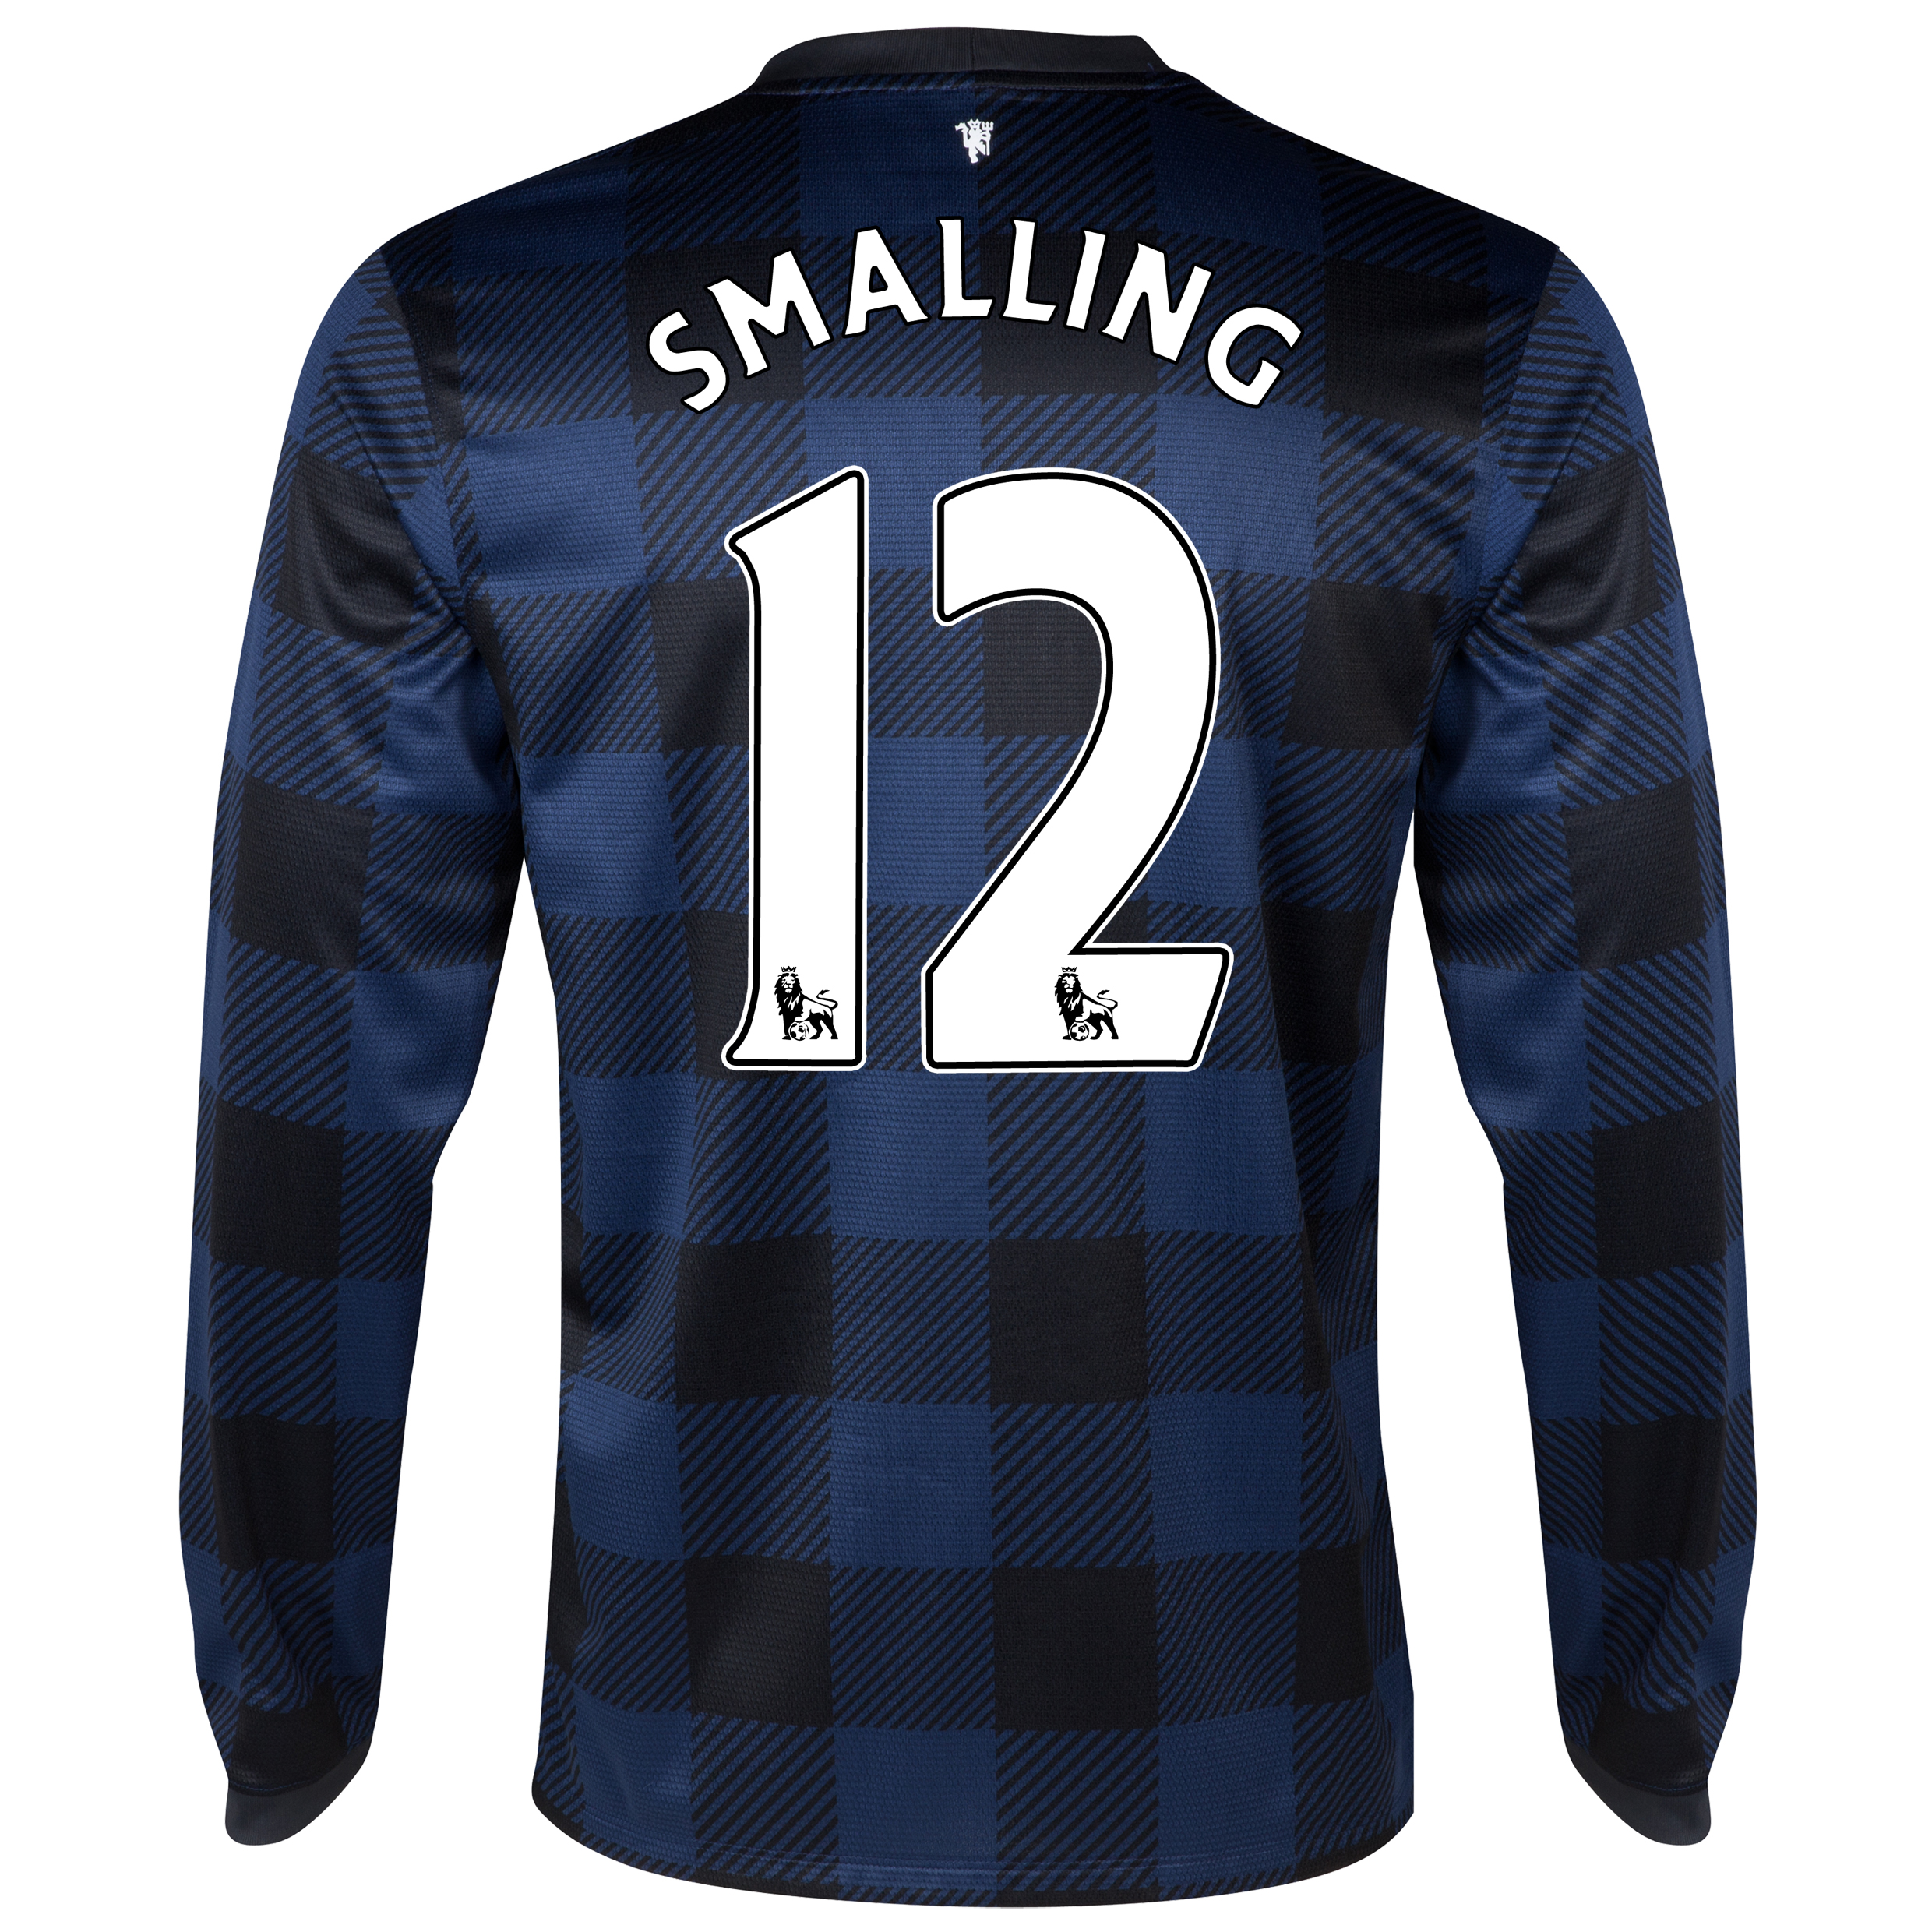 Manchester United Away Shirt 2013/14 - Long Sleeved with Smalling 12 printing